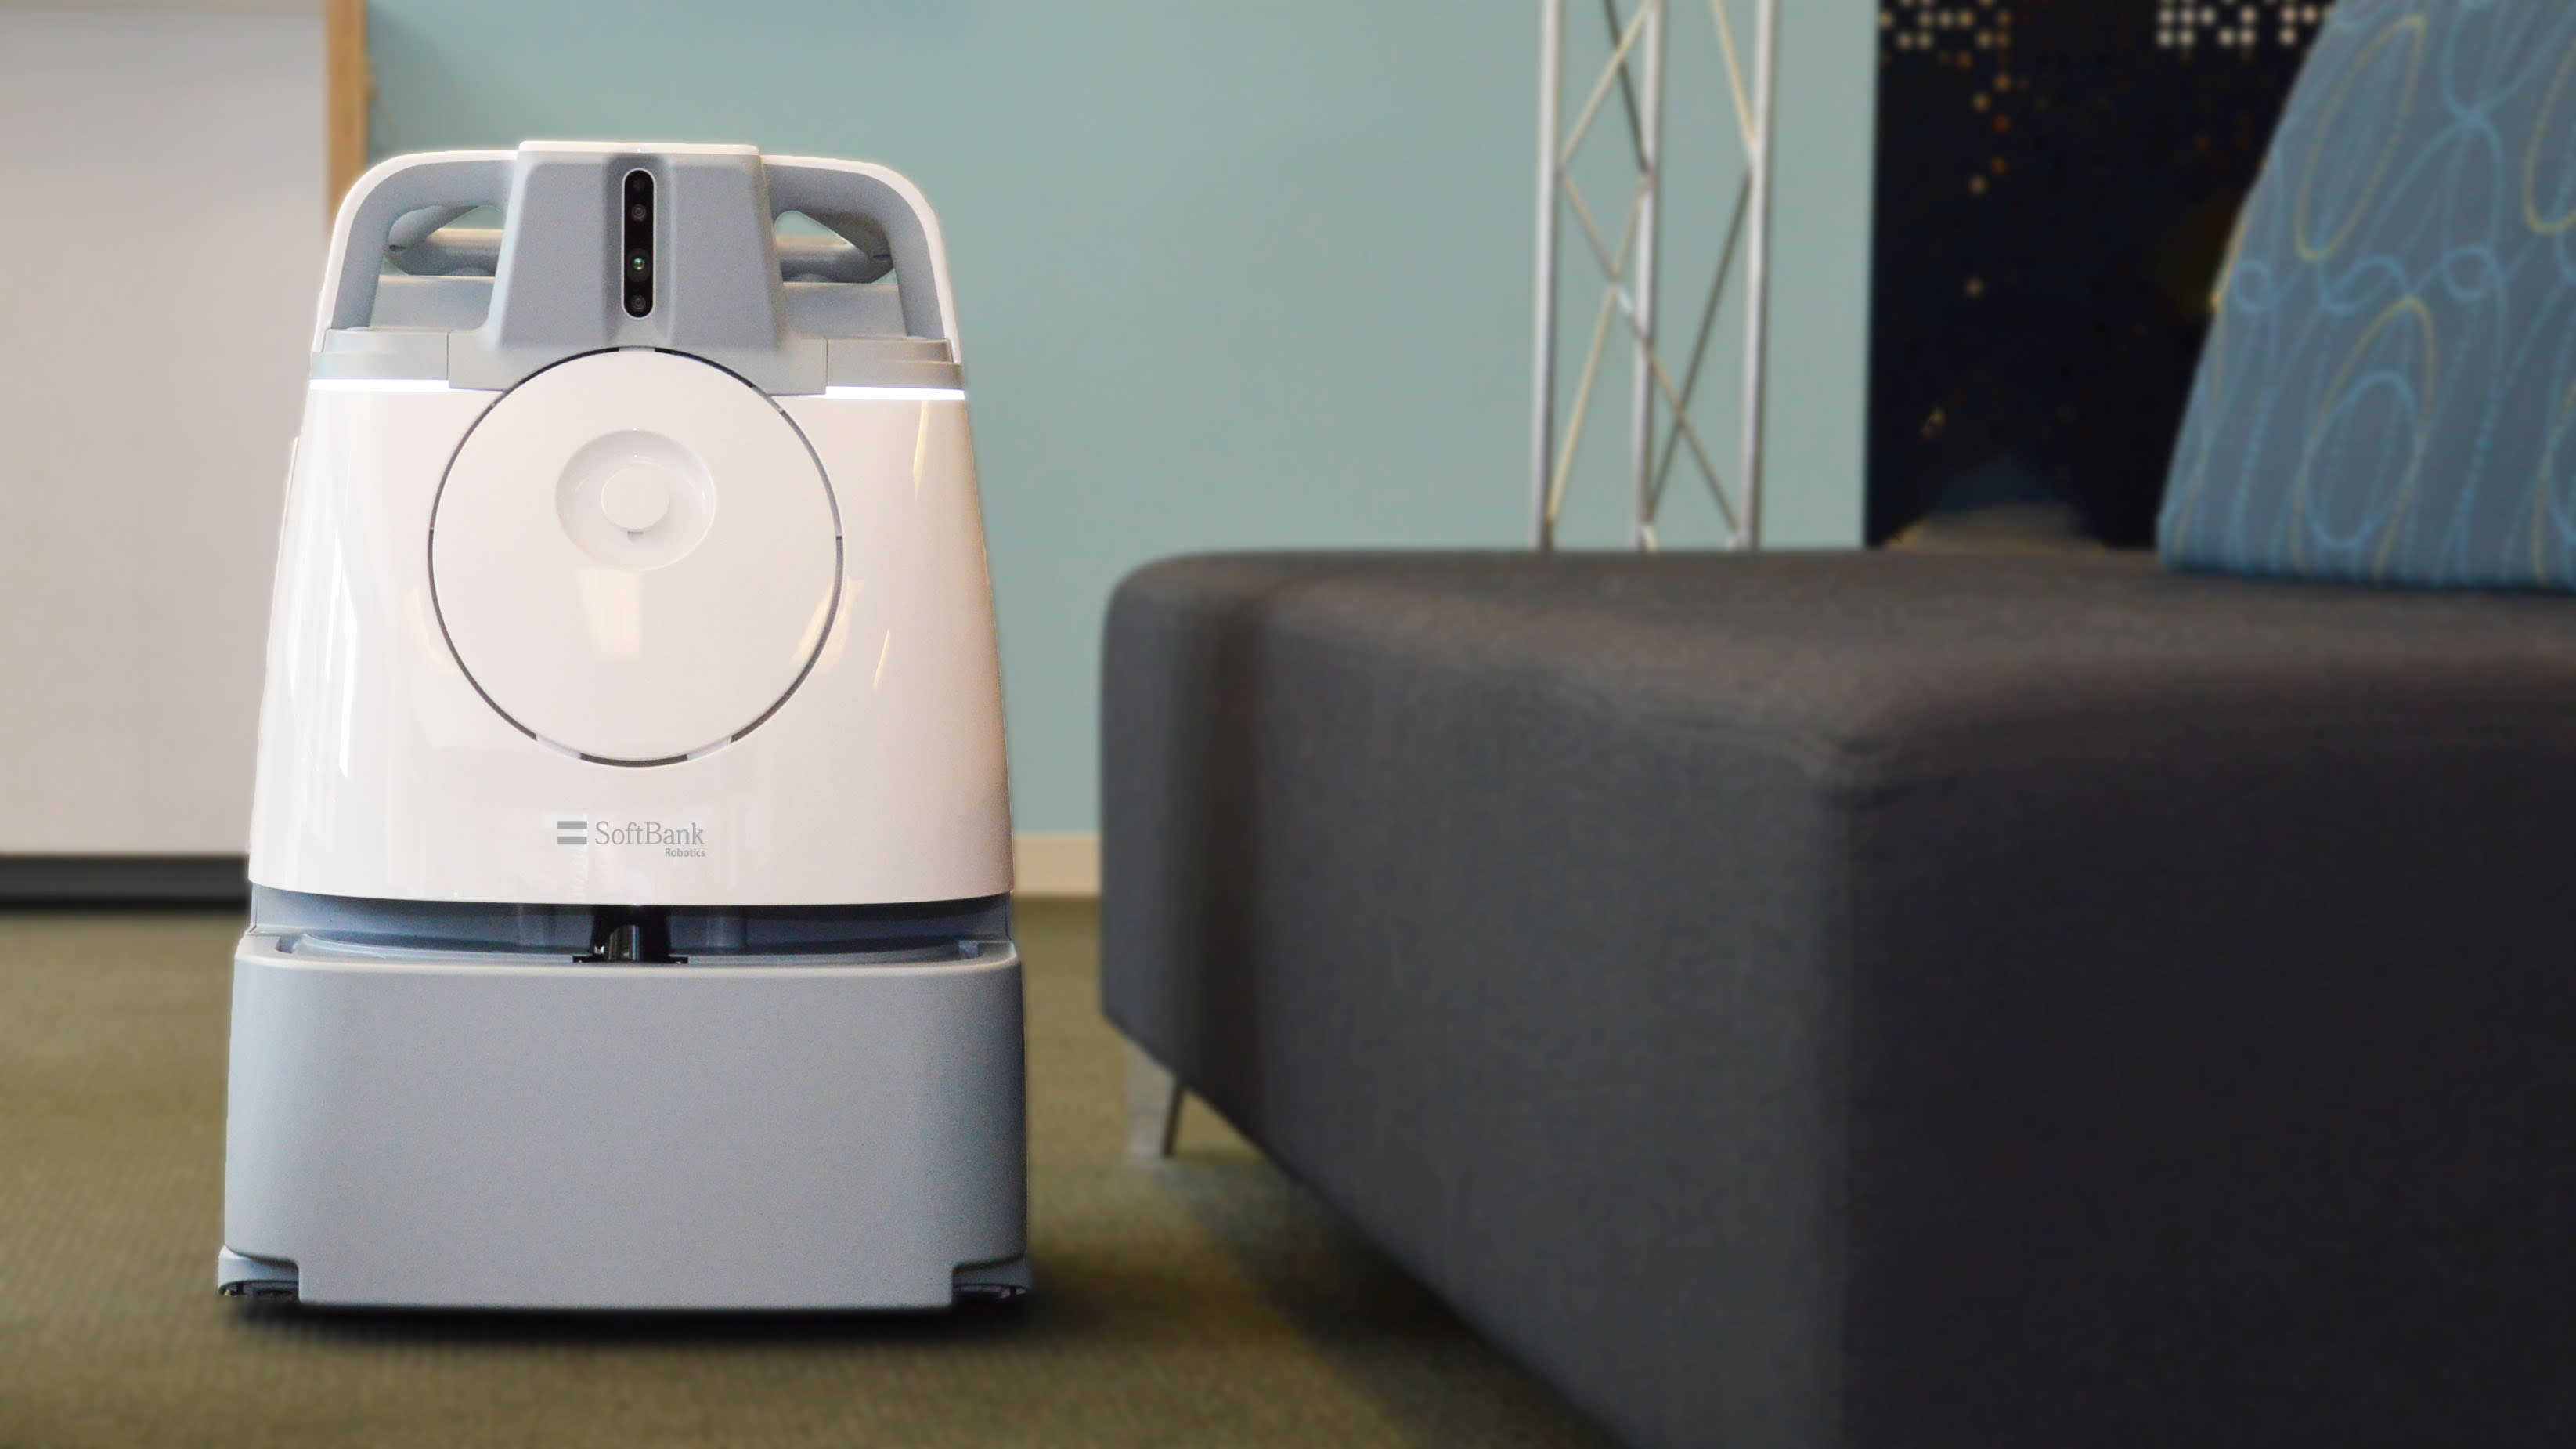 How Robots Can Help During a Pandemic